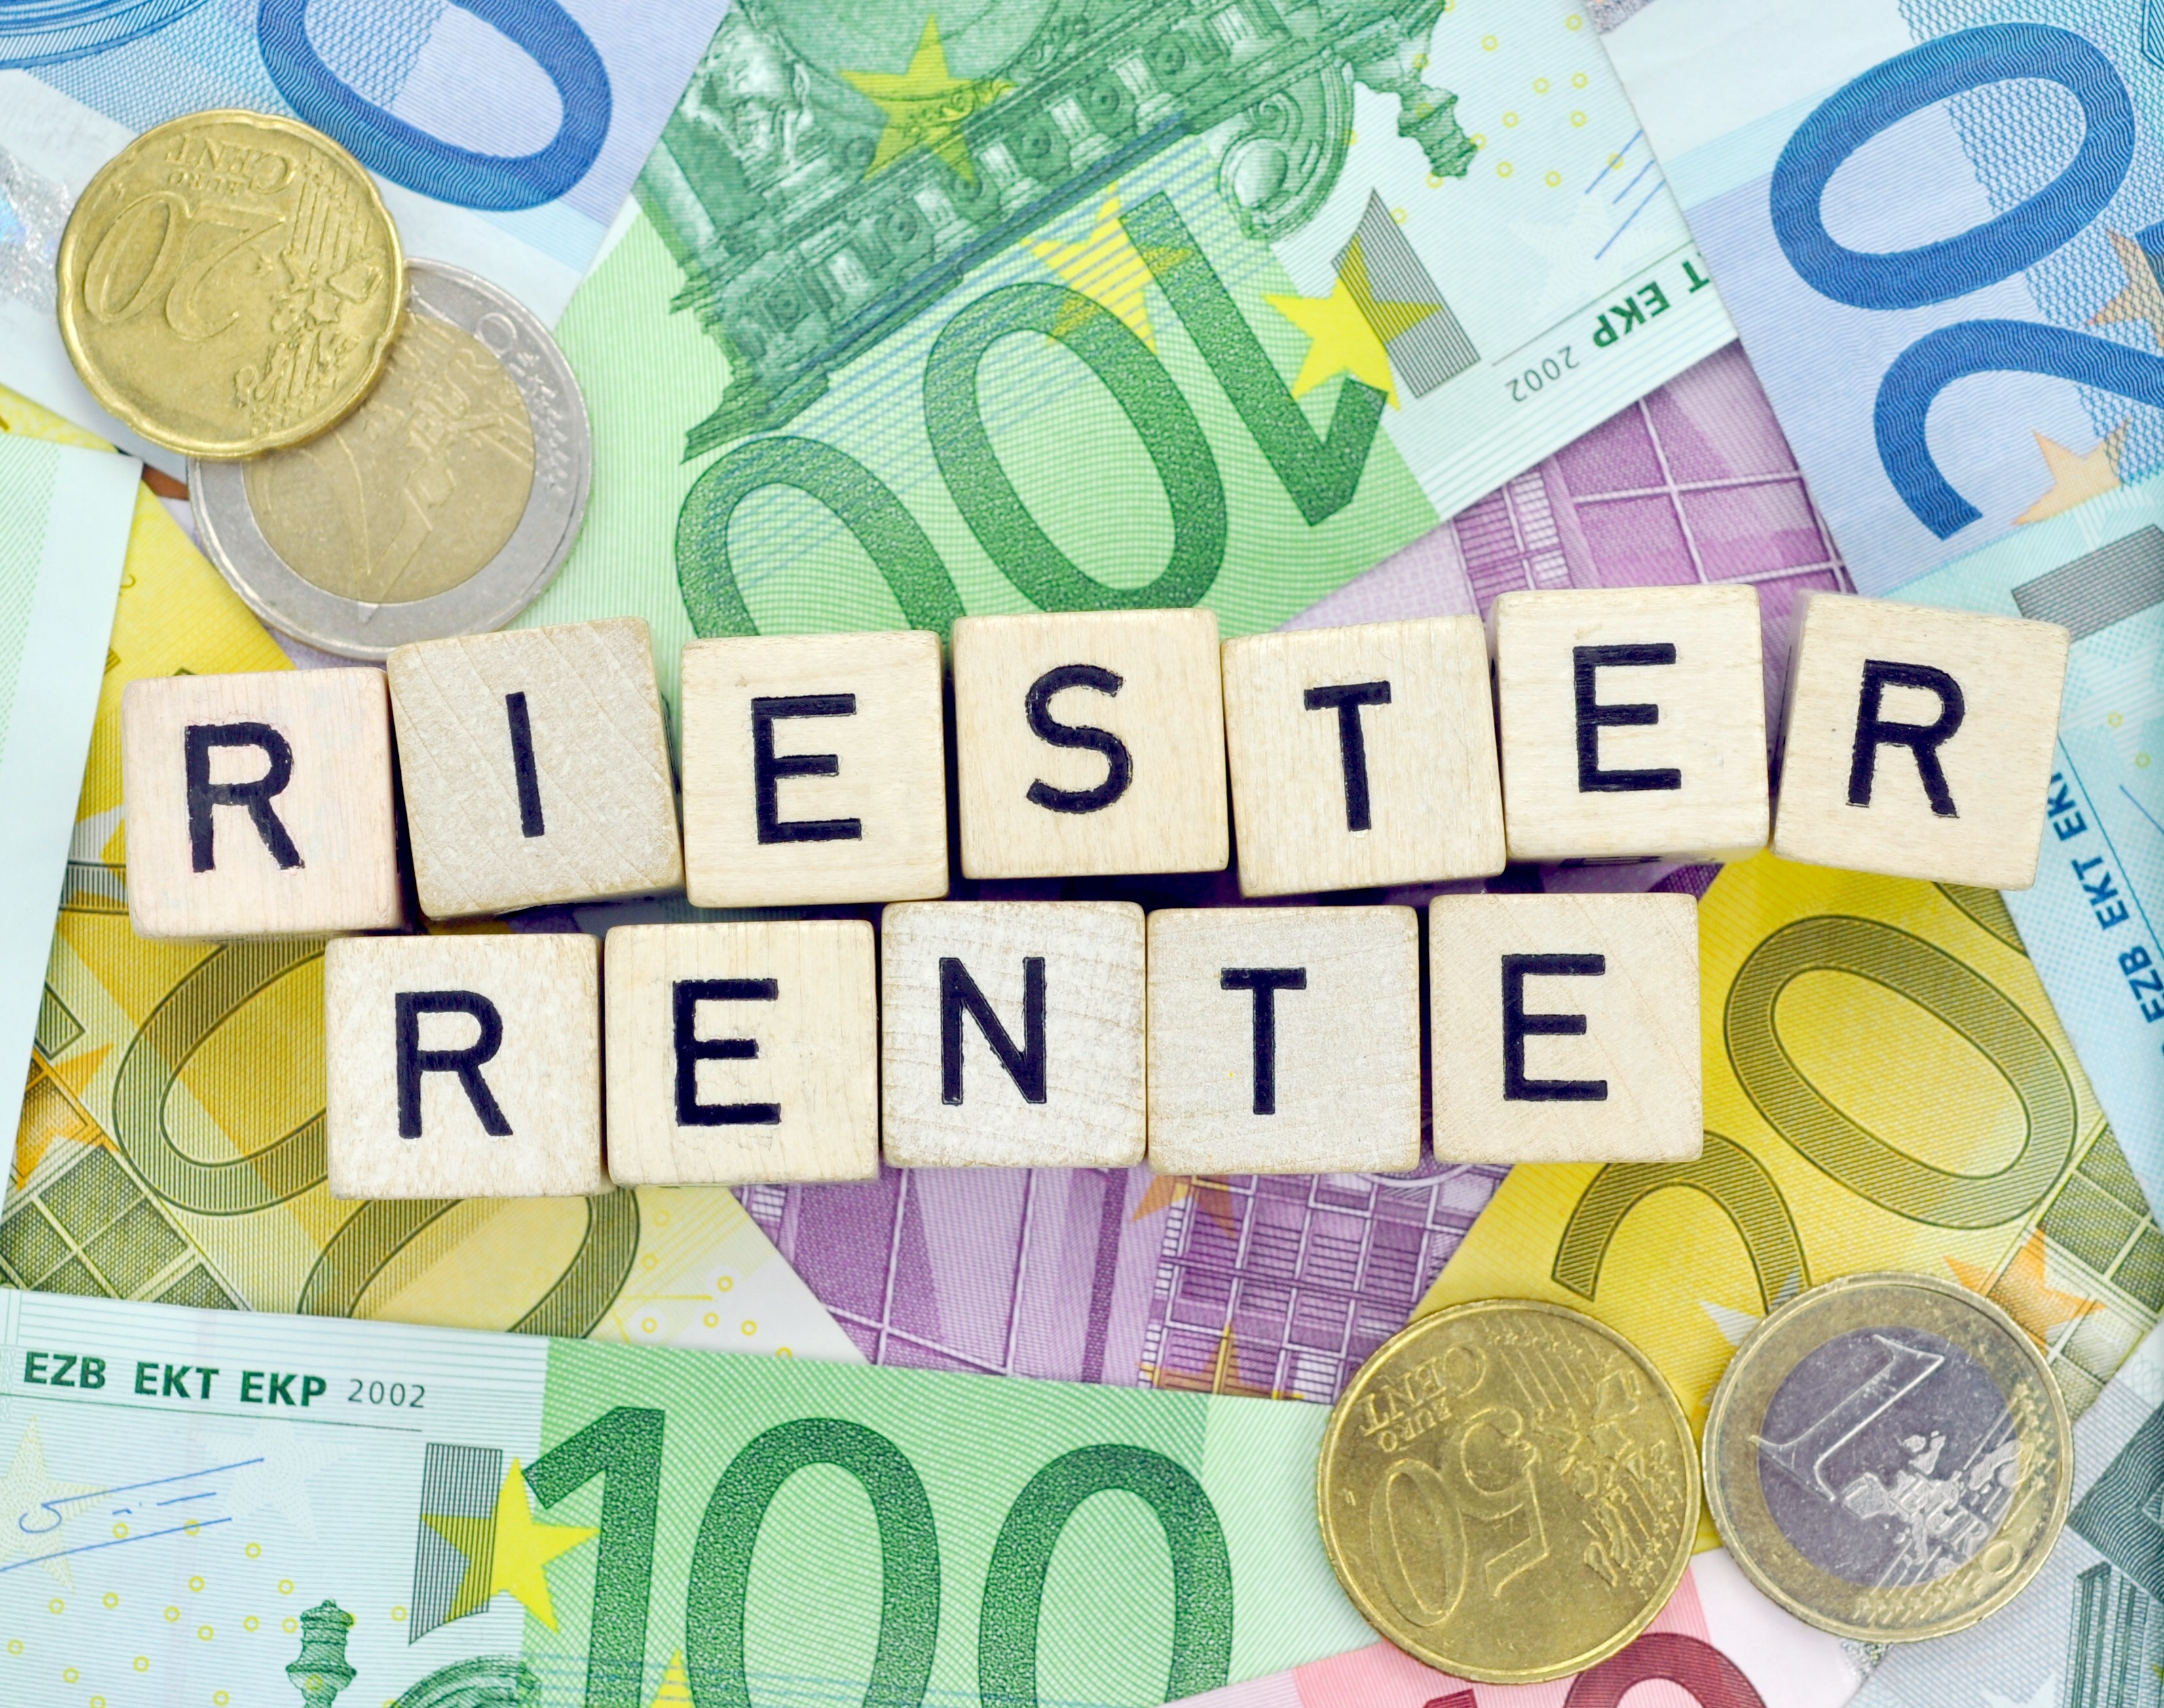 Government subsidised pension schemes – Riester Pension